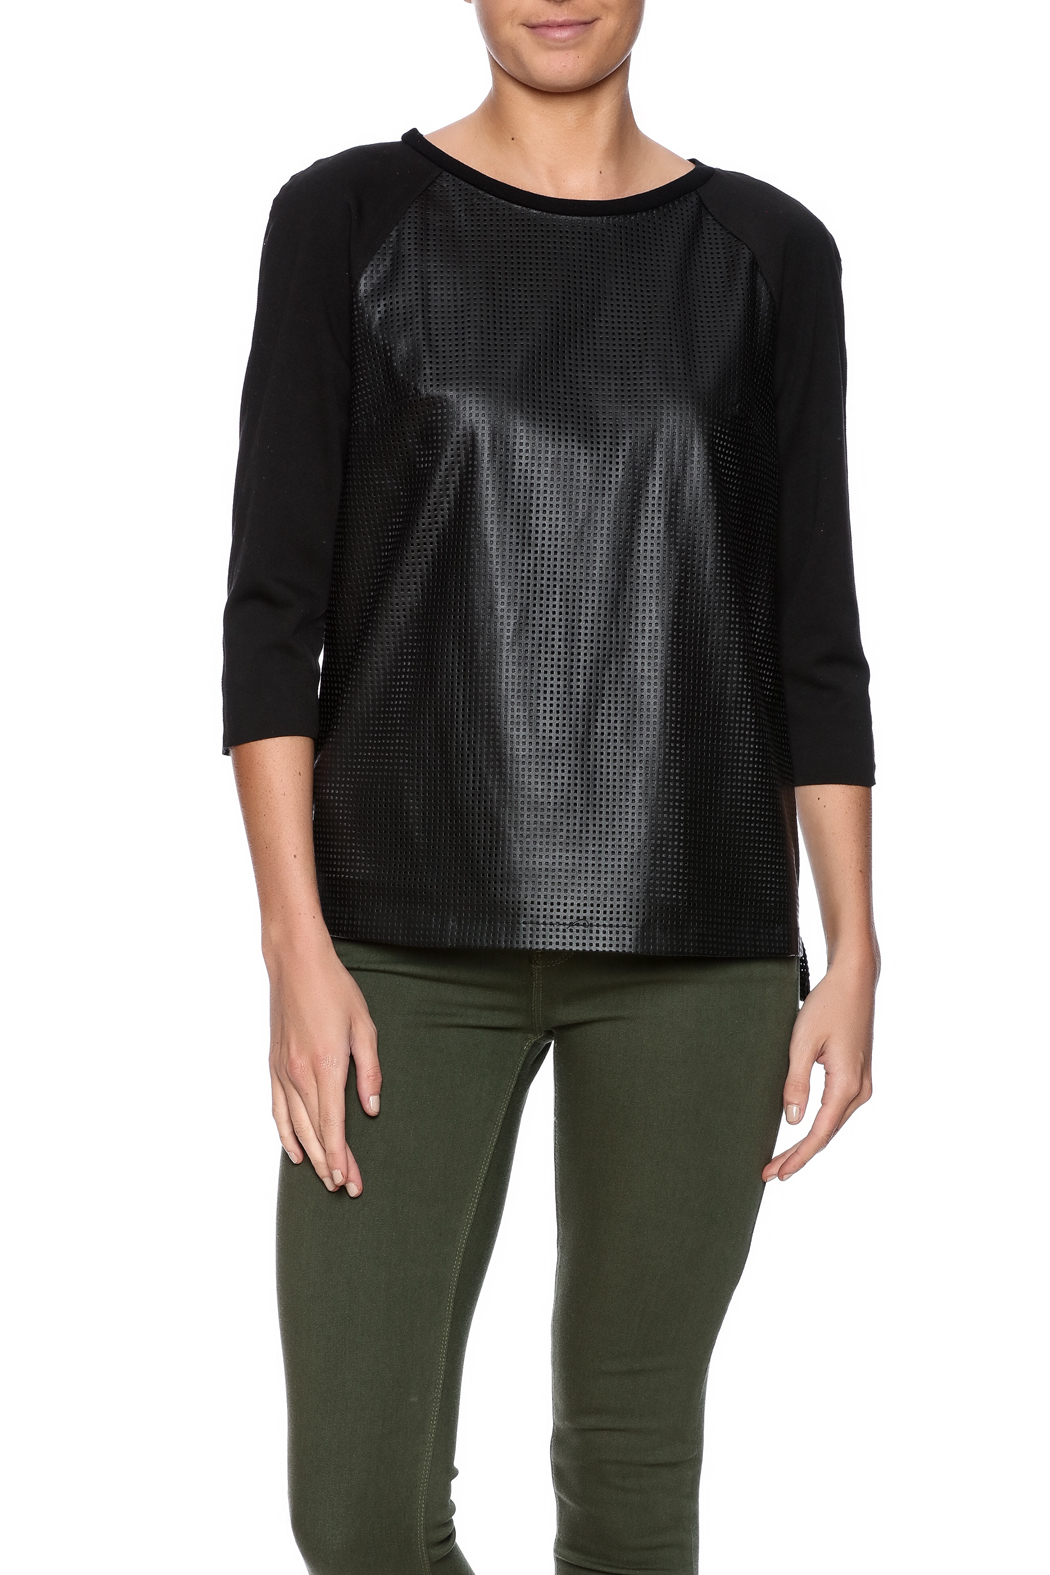 Tahari Laser Cut Top - Front Cropped Image